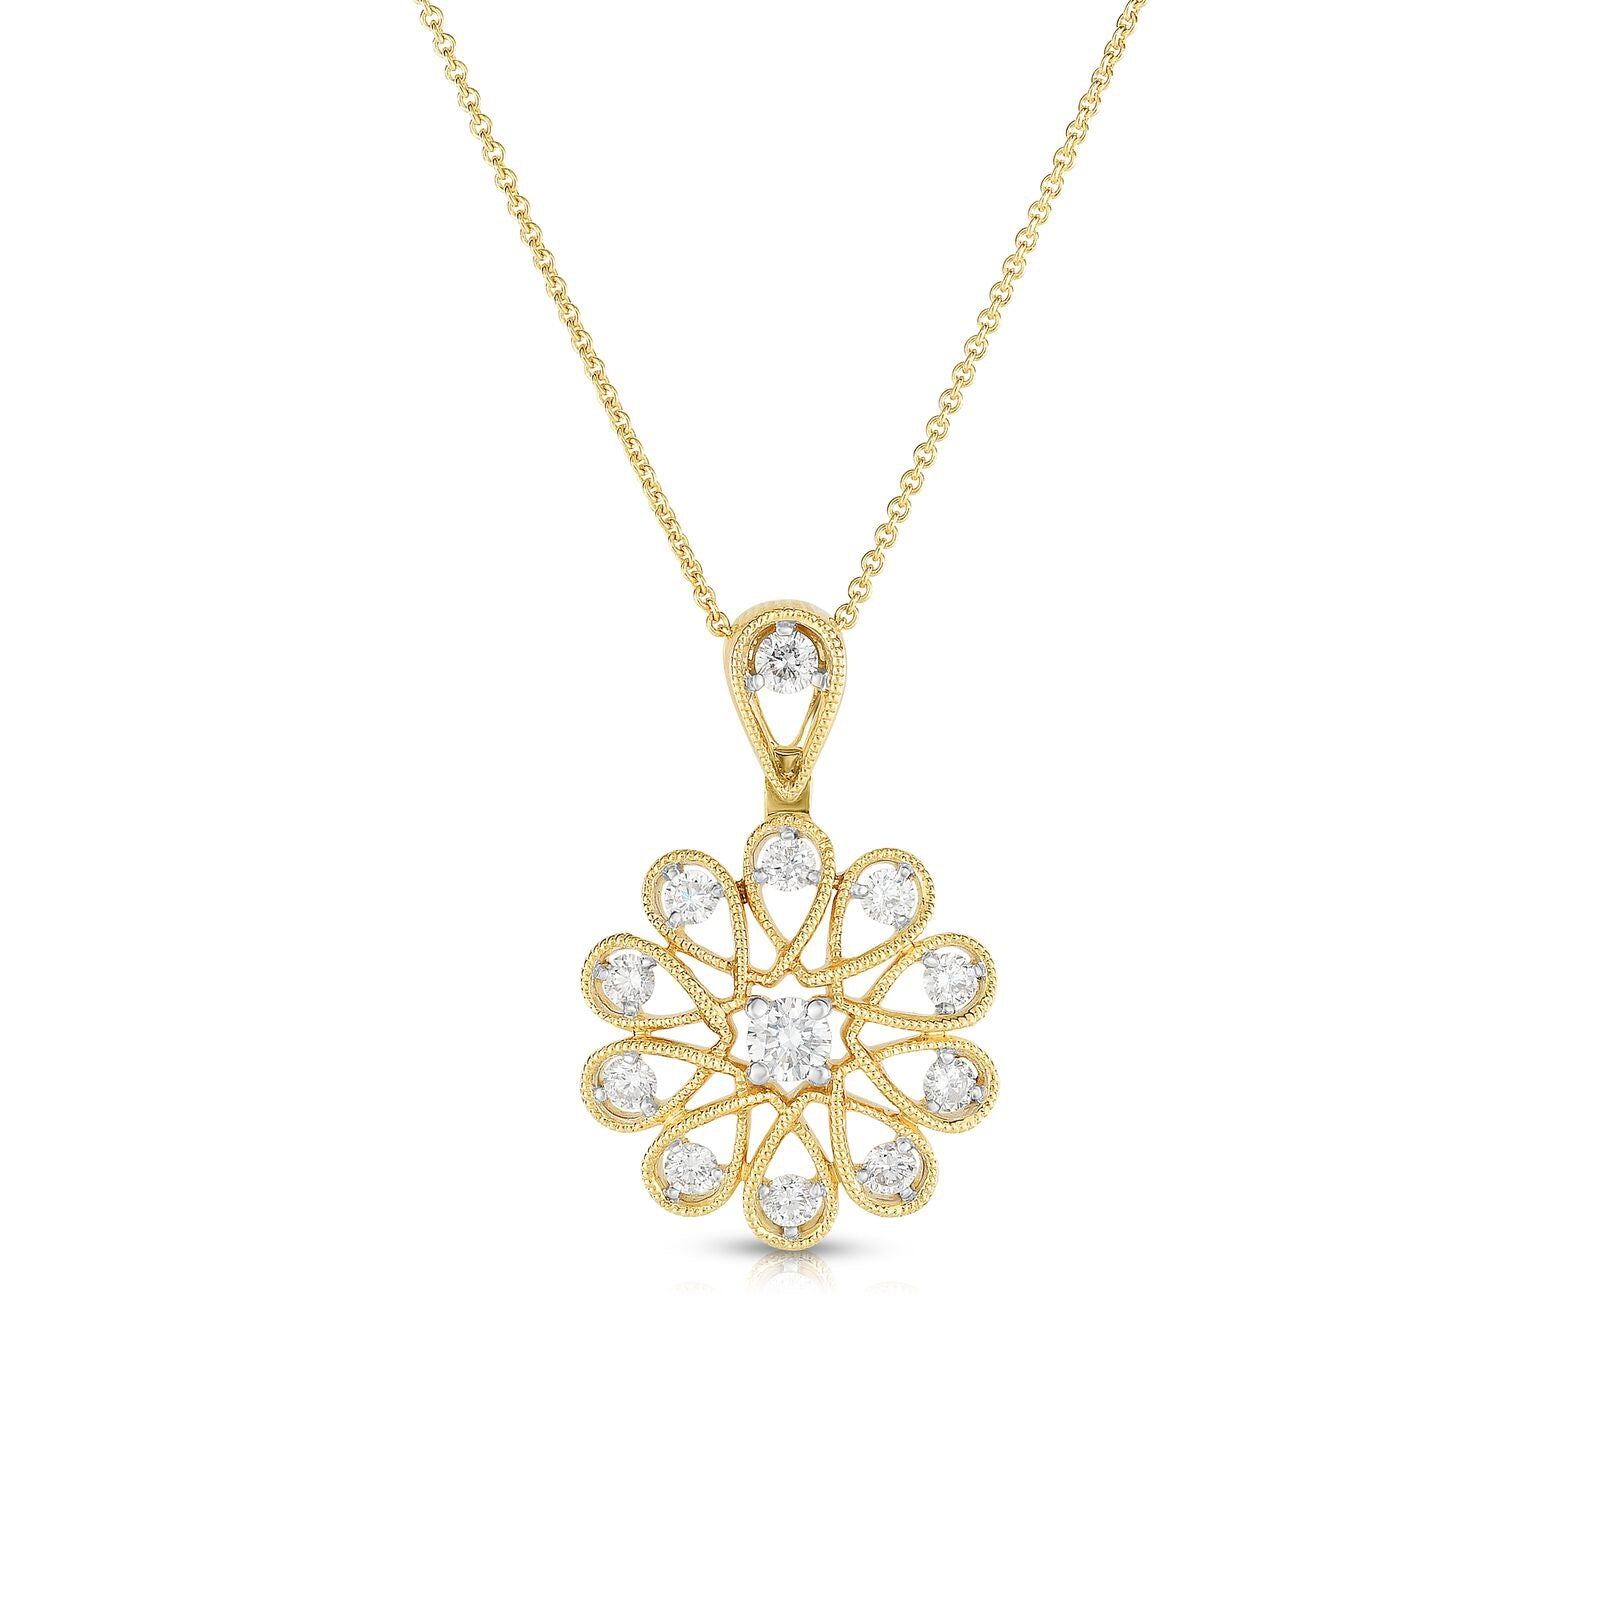 Sunburst Design Diamond Pendant, 14K Yellow Gold